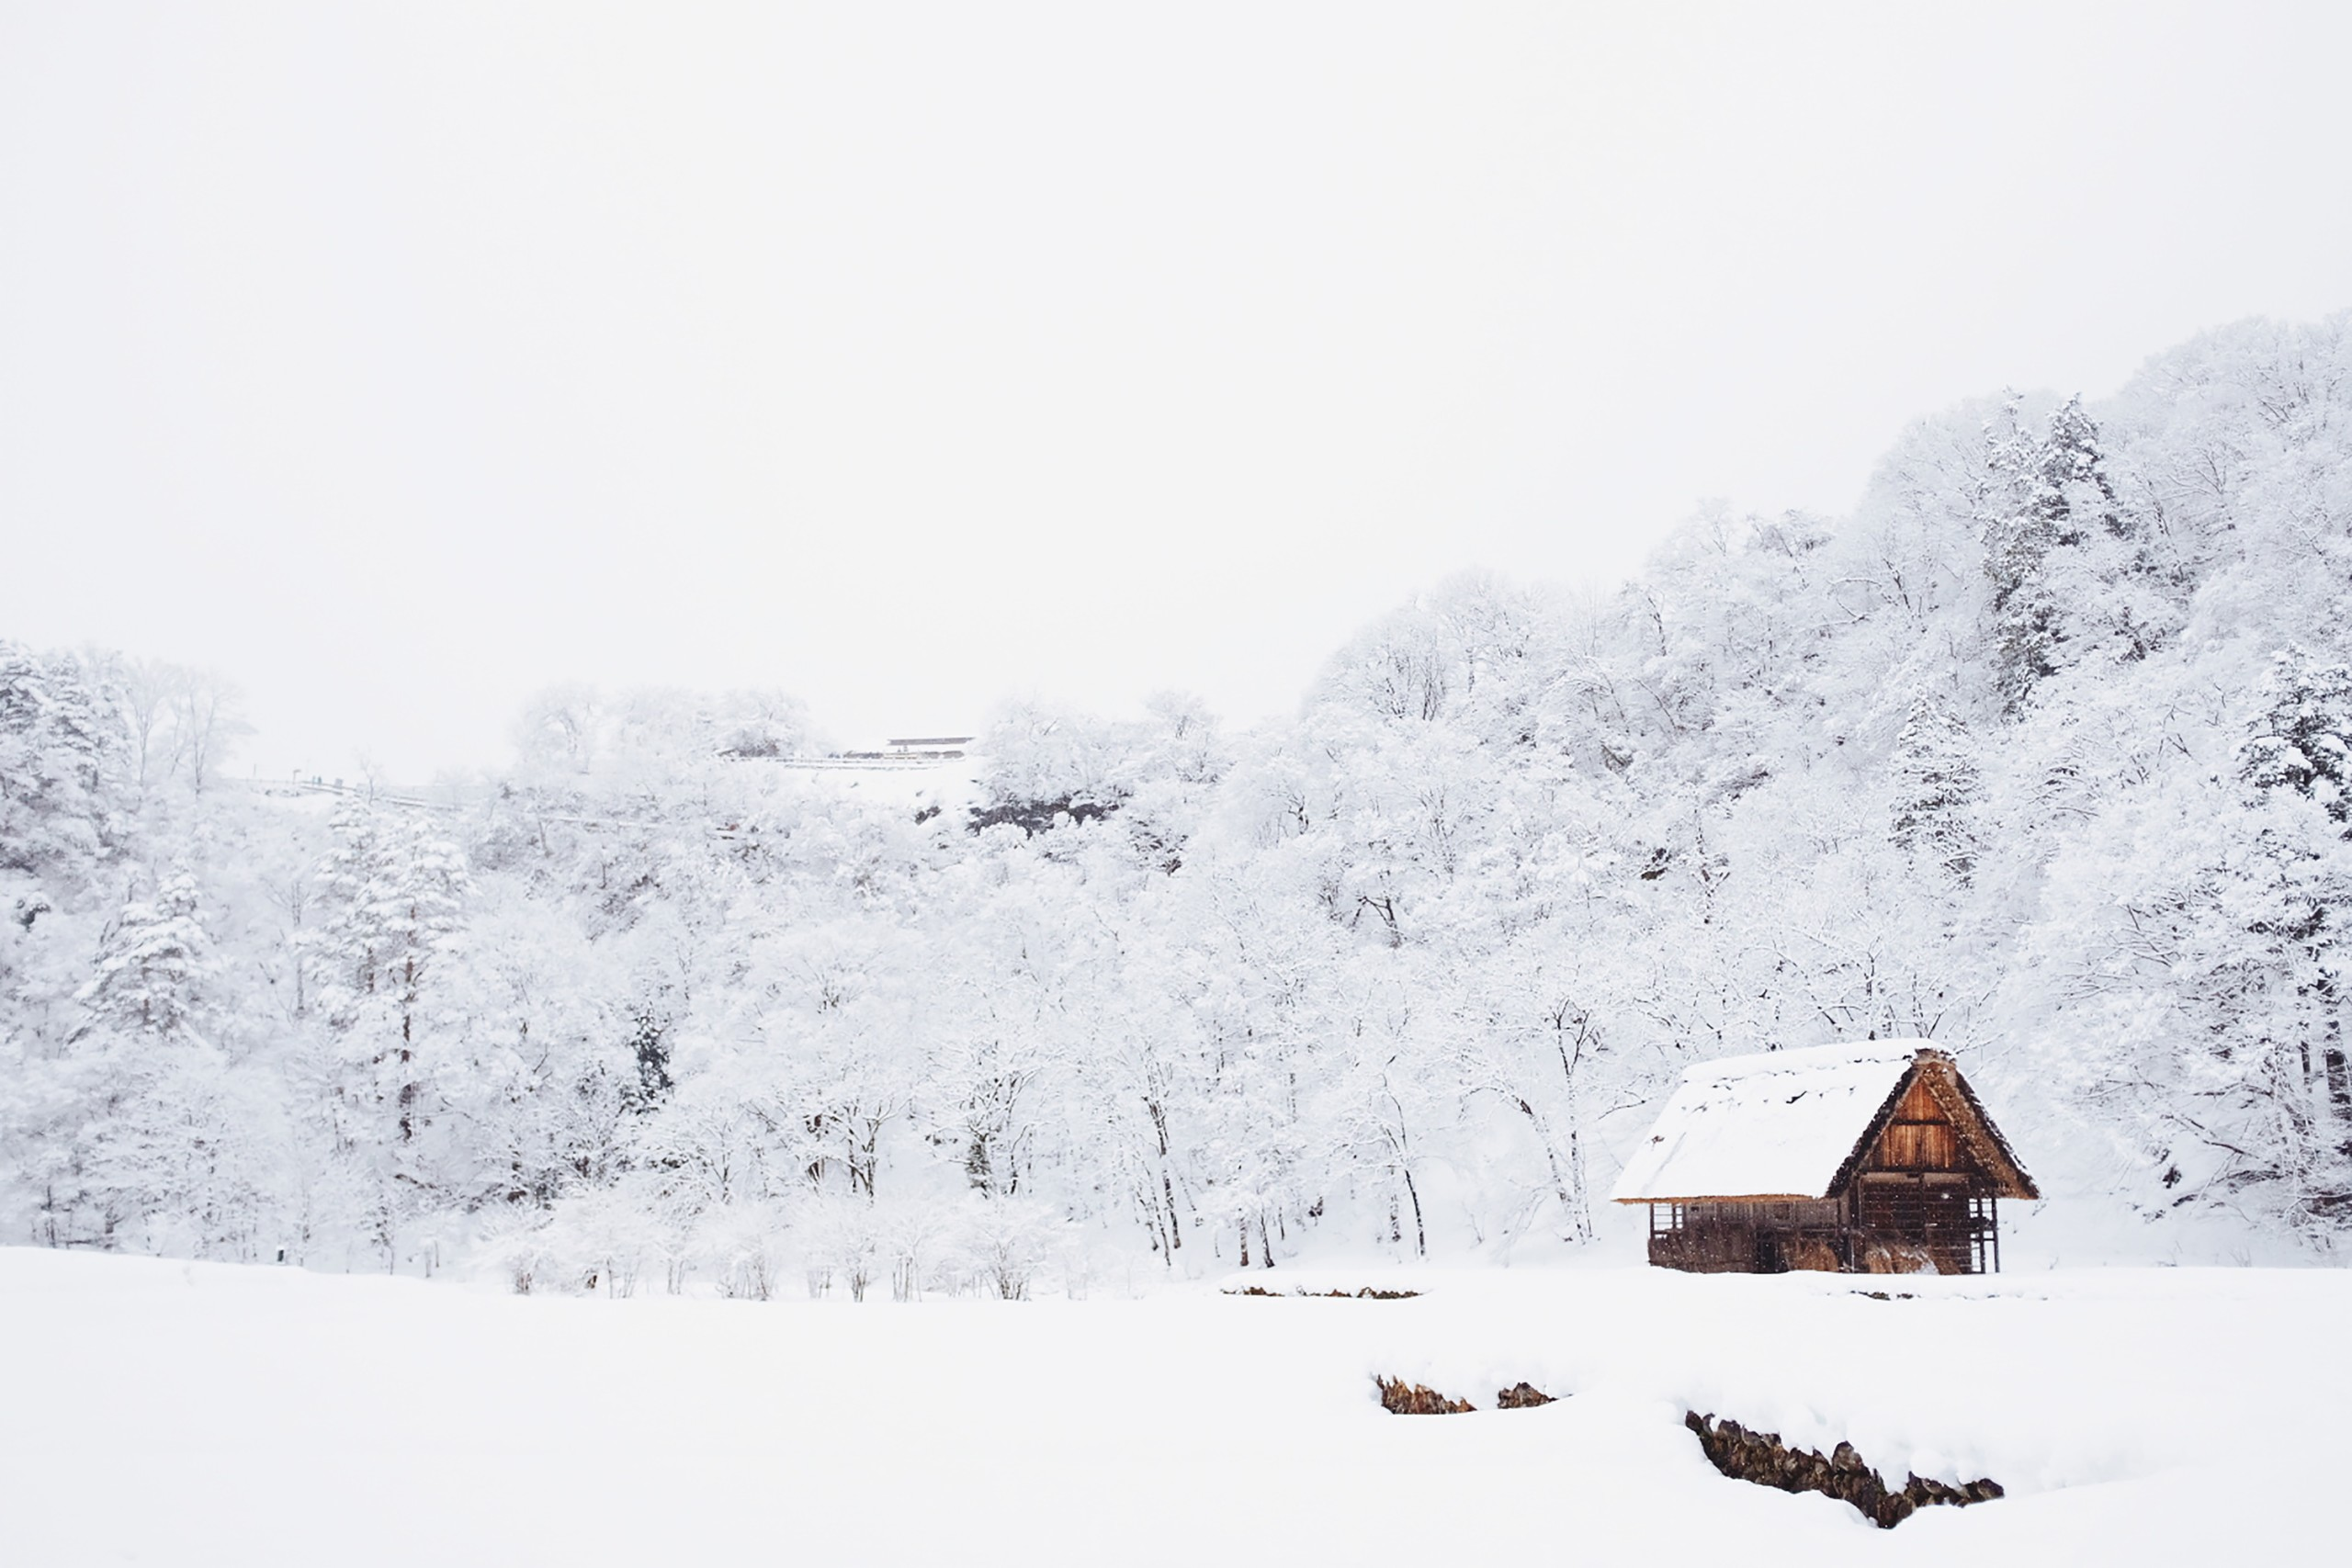 A cabin in social isolation Photo by Fabian Mardi on Unsplash